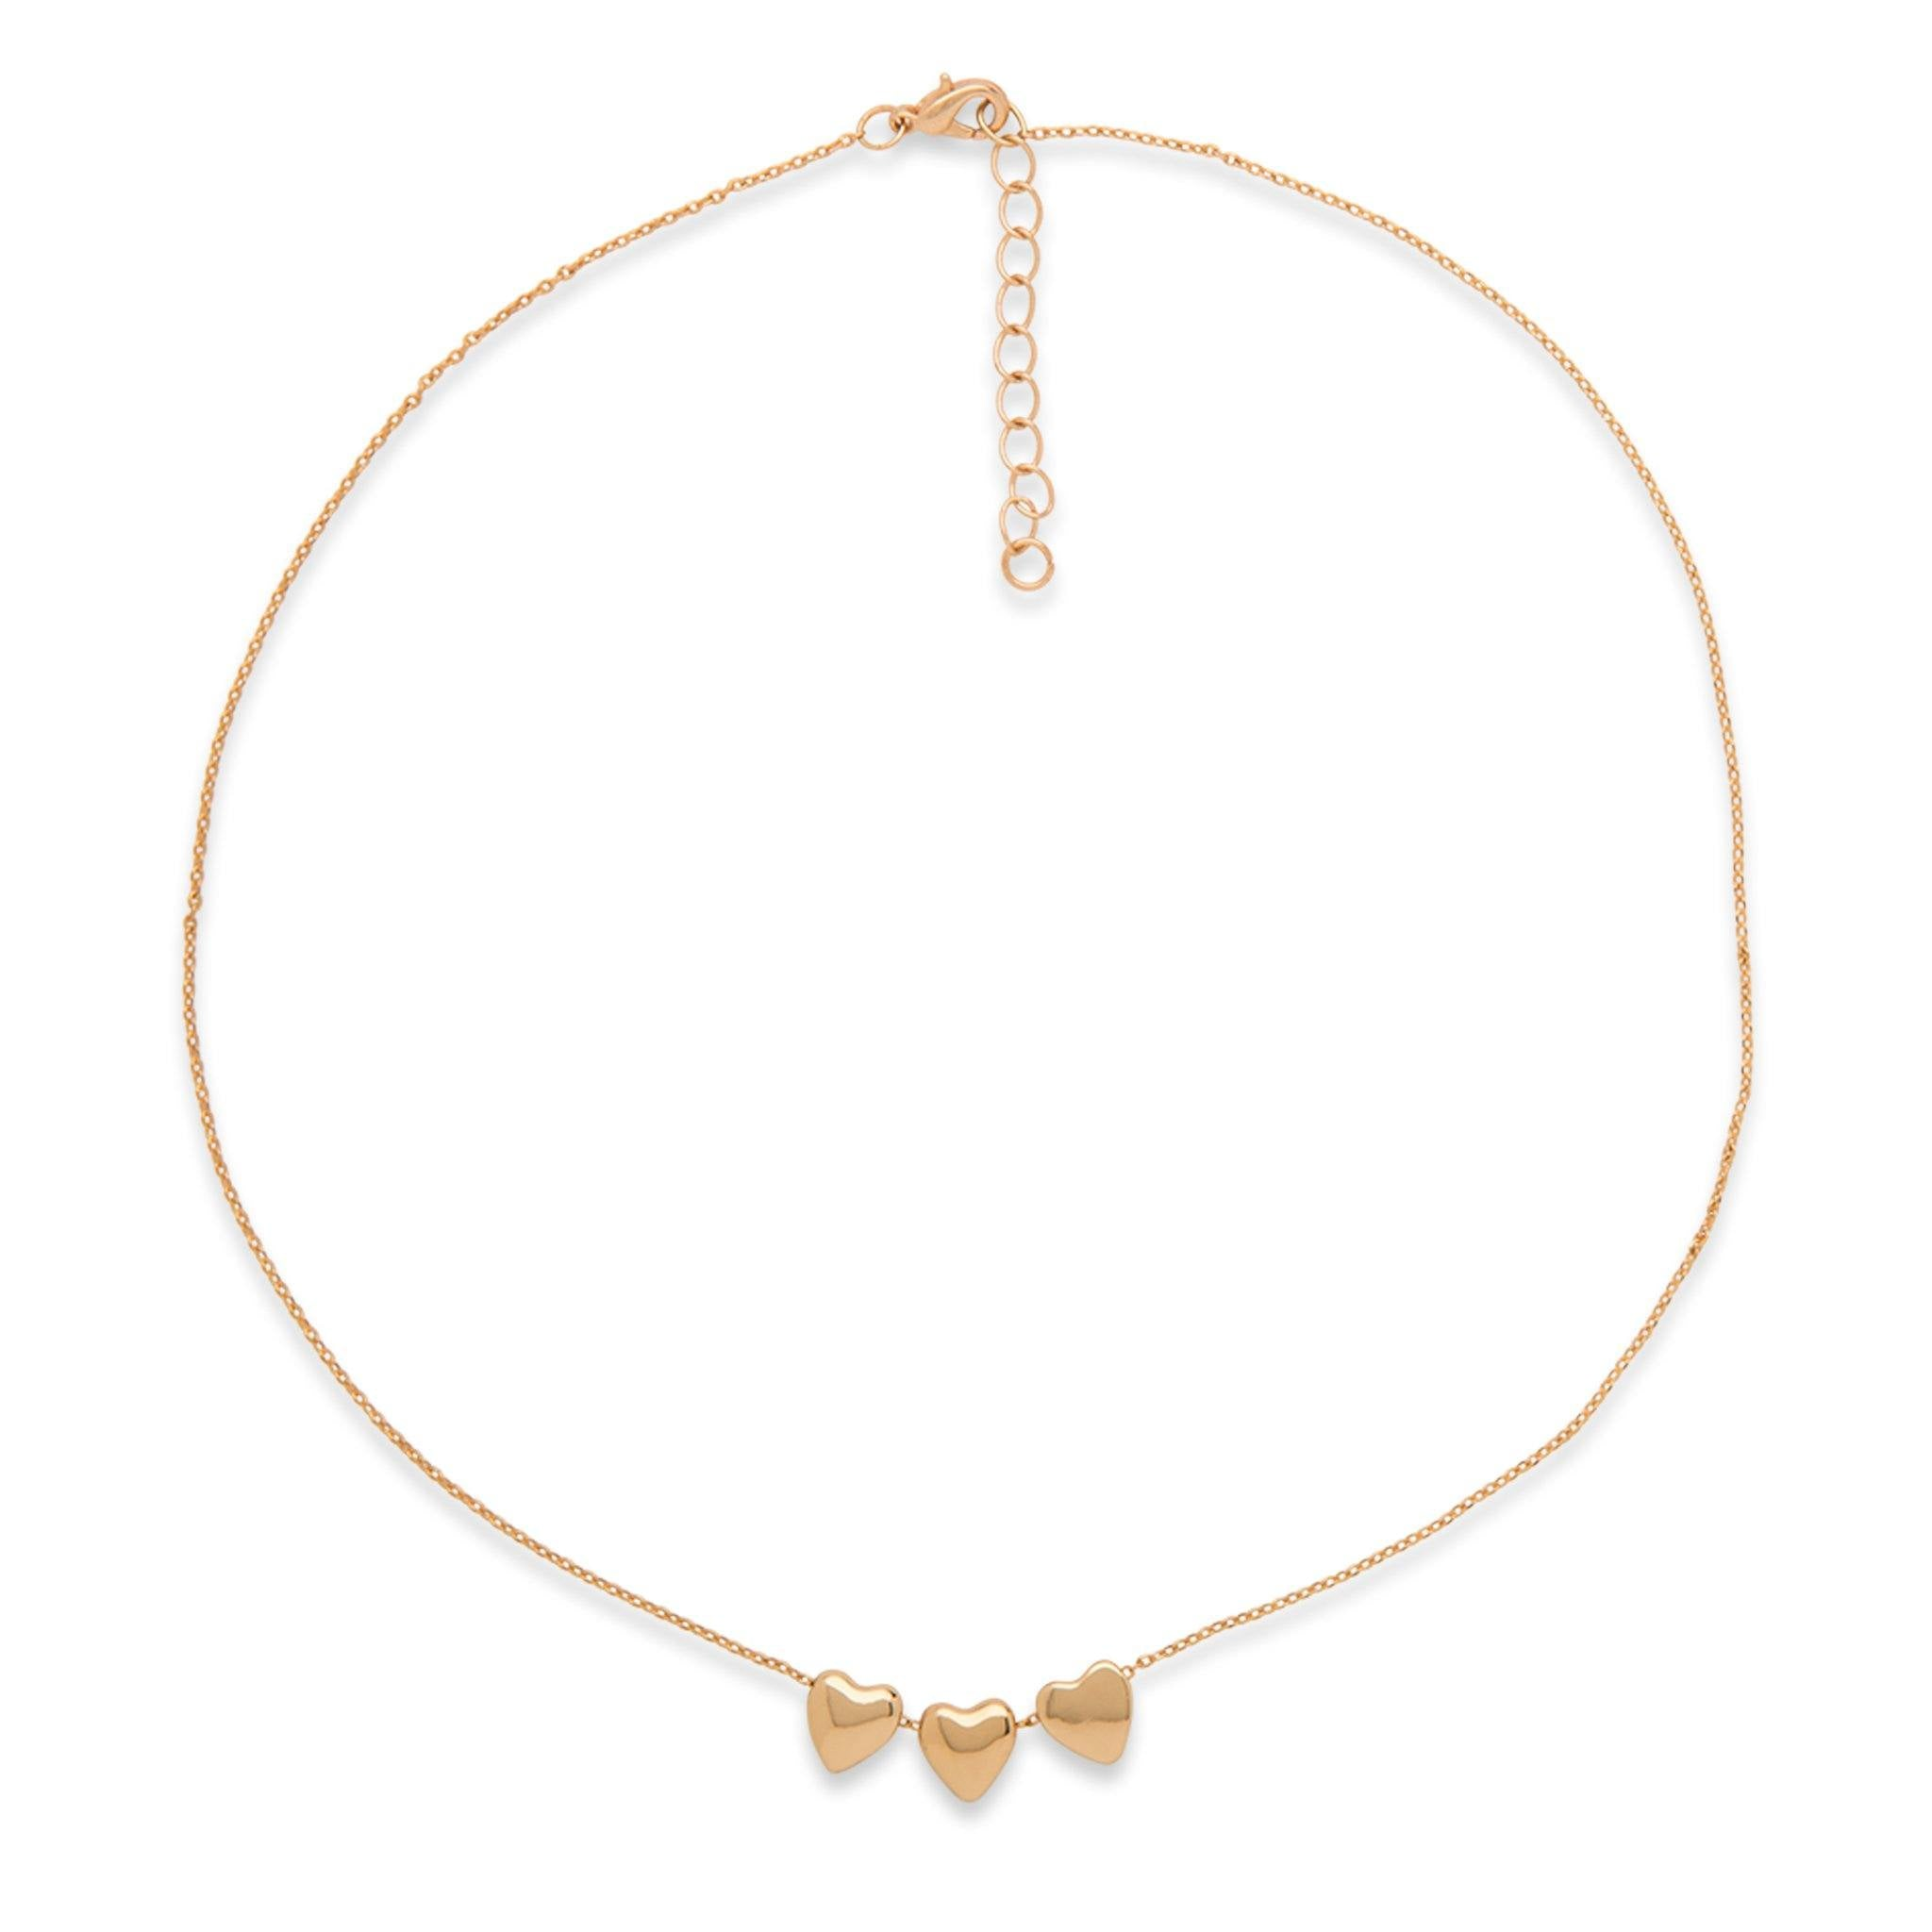 XKM158AF - Gold-Coloured Heart Necklace for Girls